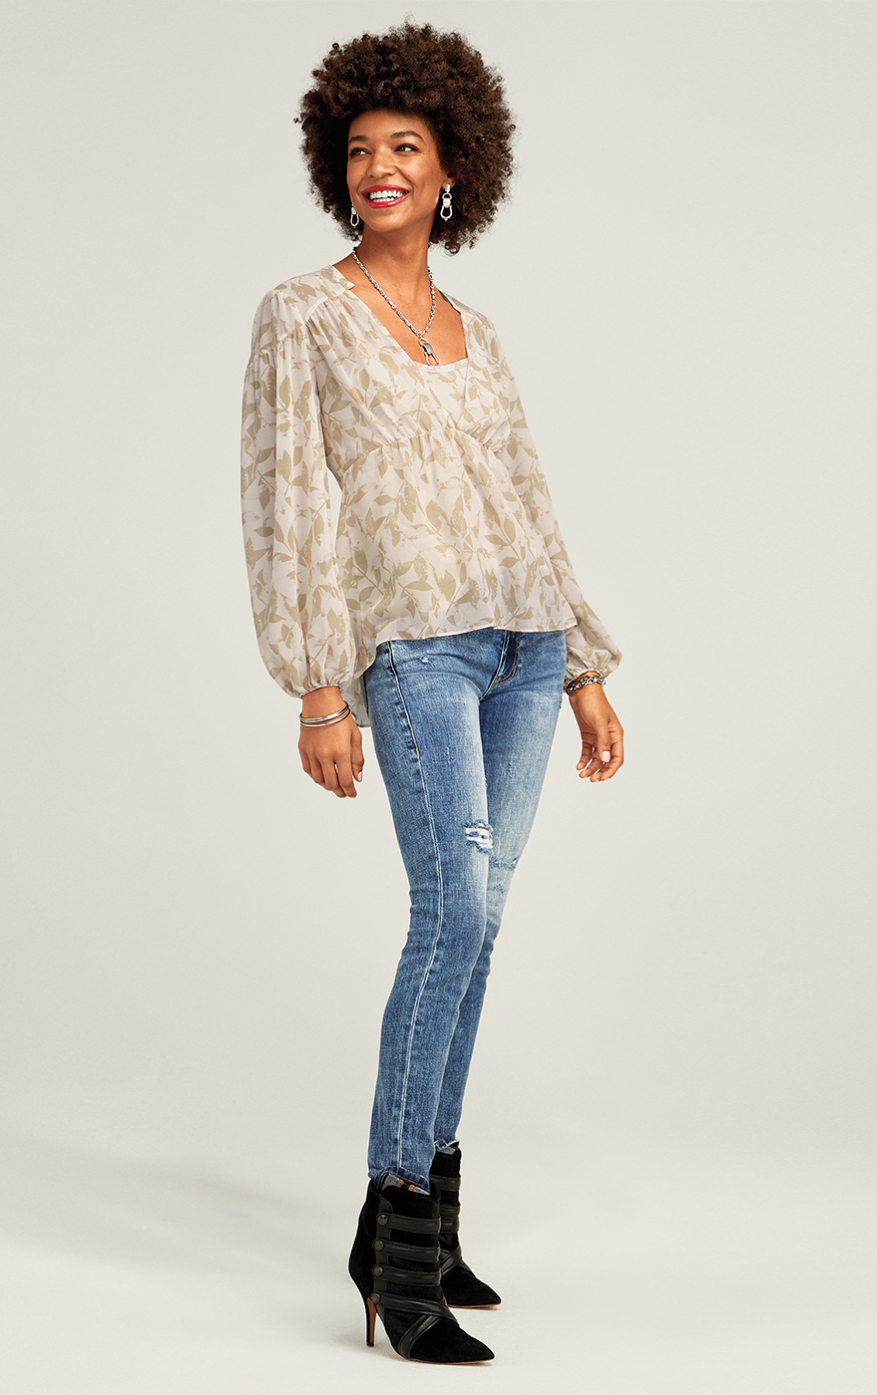 Cinch Skinny in Adventure Wash, Couplet Blouse in Silver Leaf